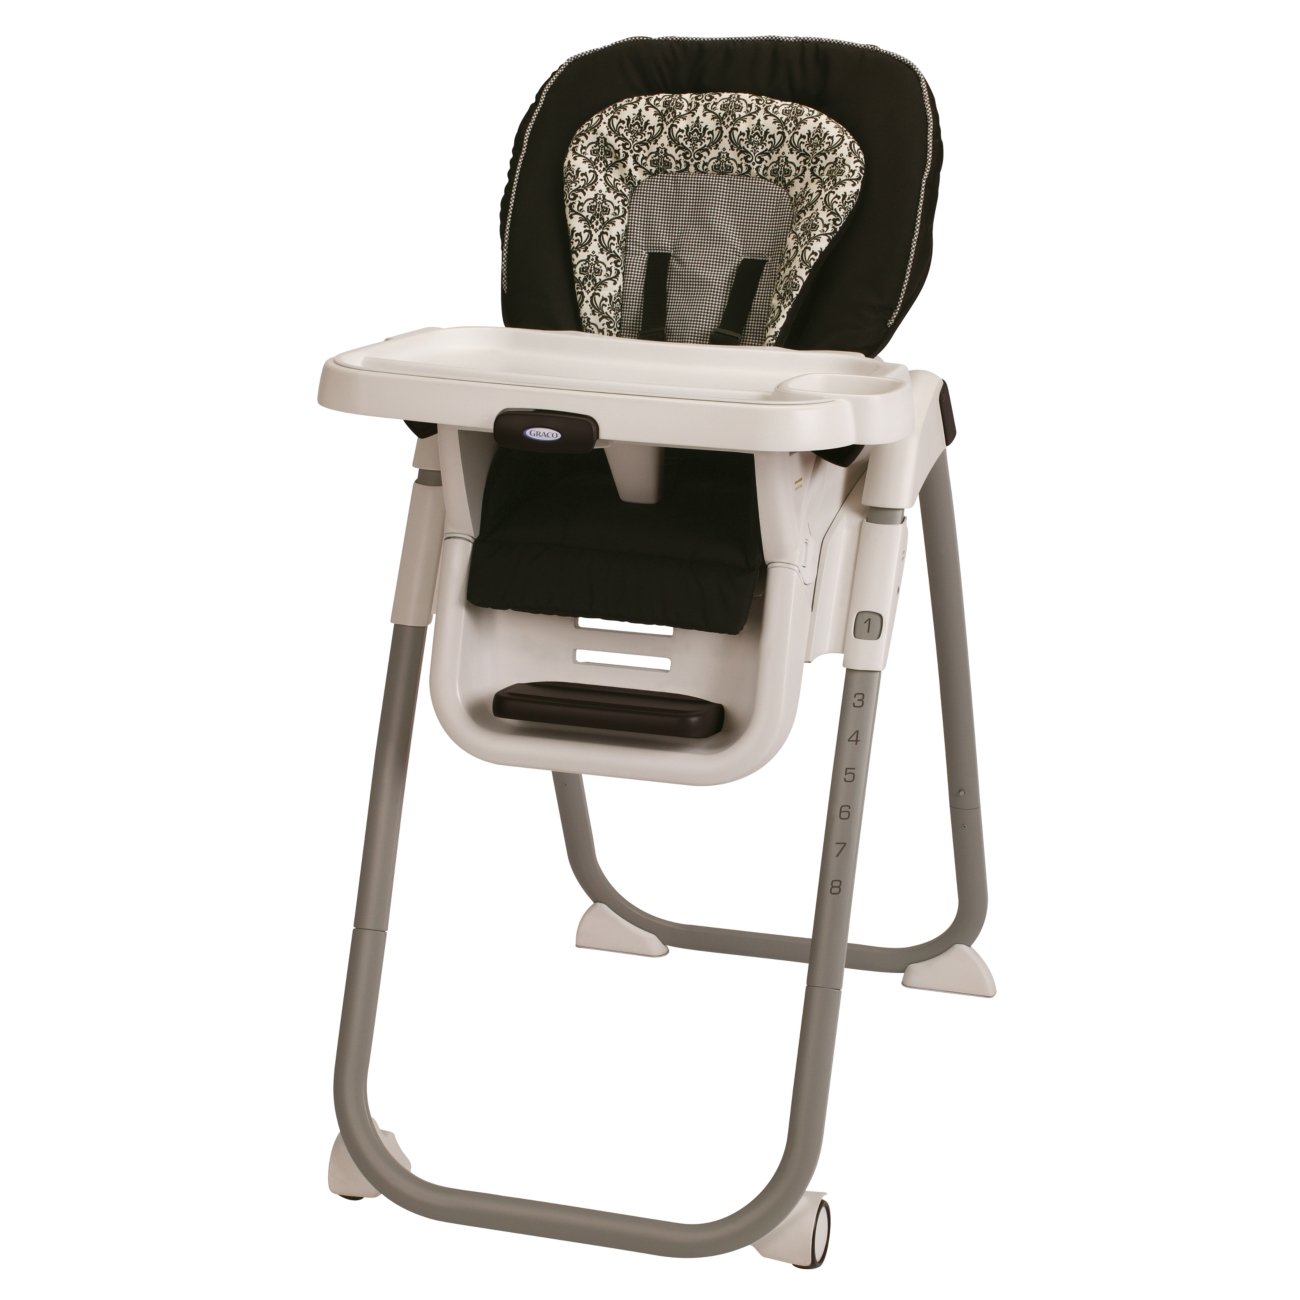 Graco TableFit Rittenhouse High Chair, Black/White 1852649